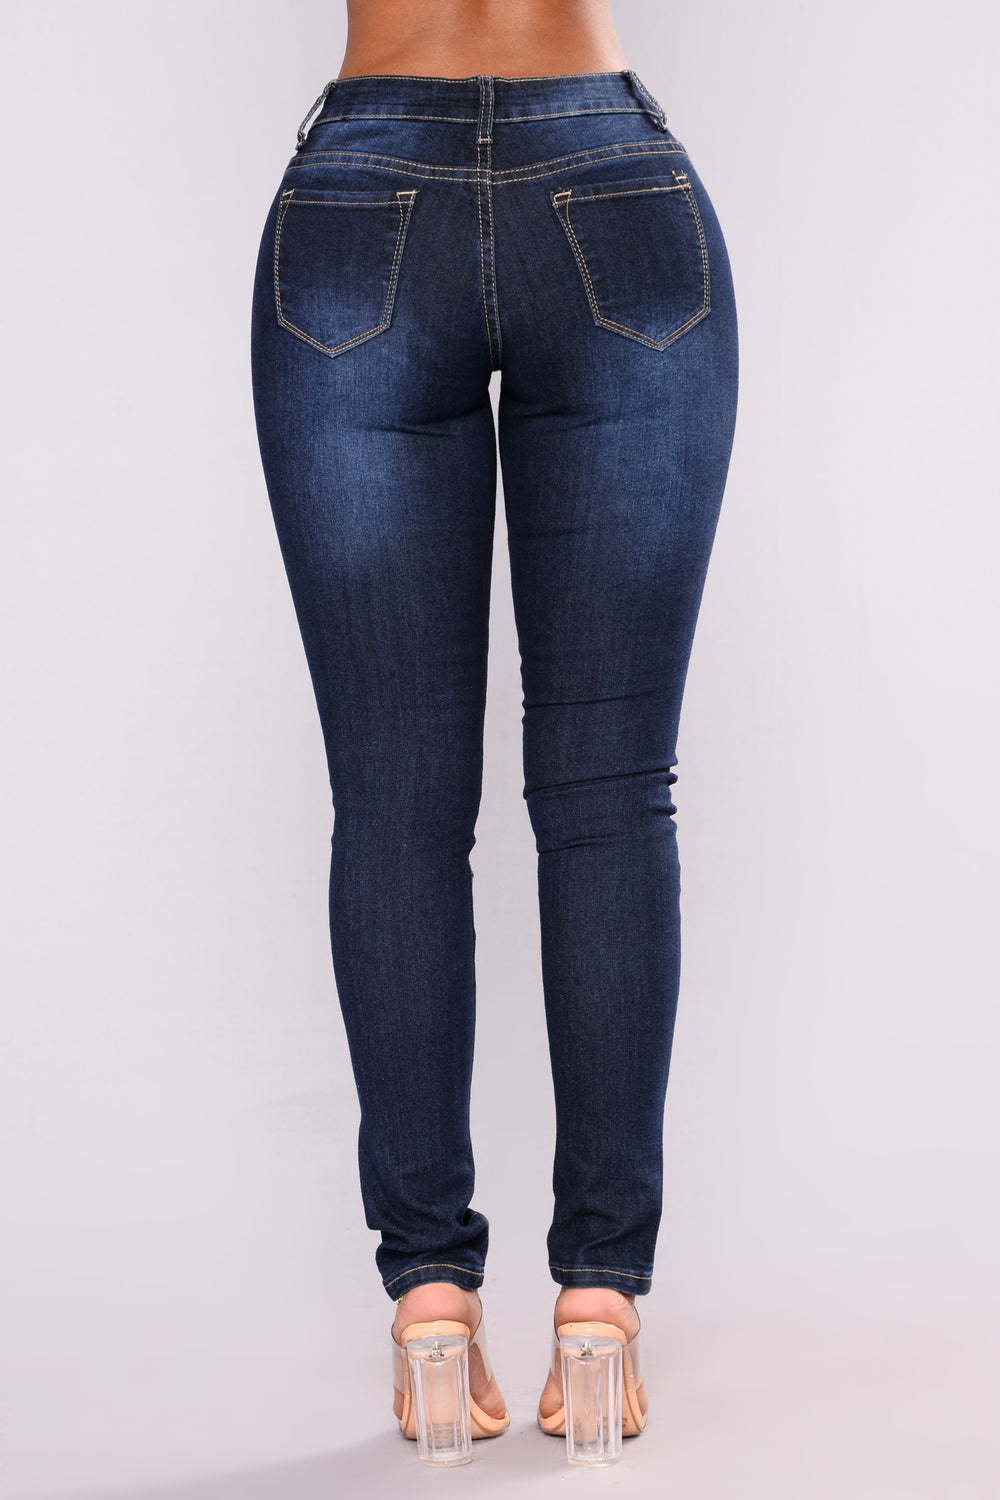 Your Boo Skinny Jeans - Dark Denim